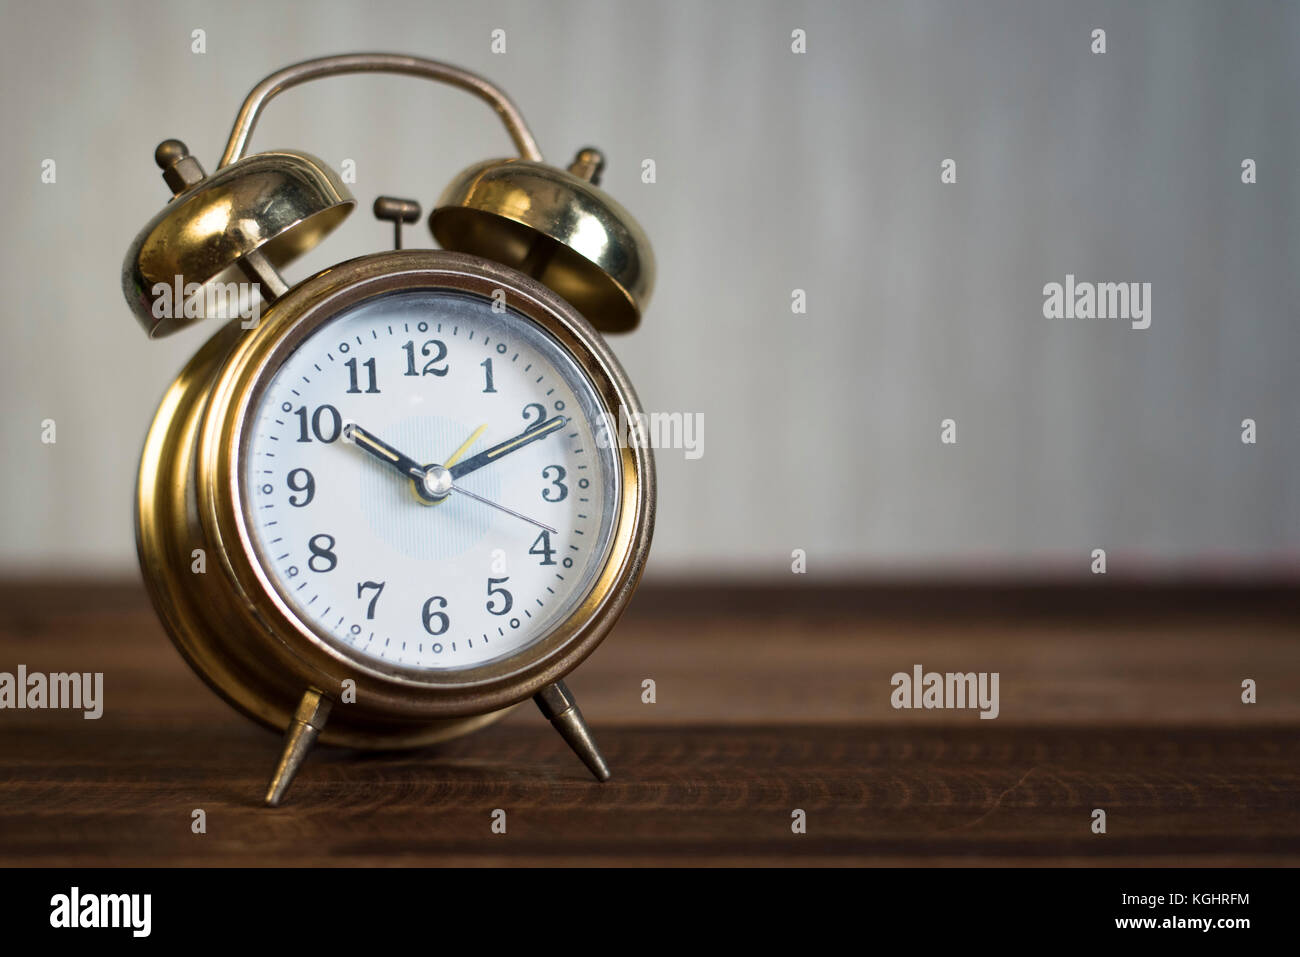 golden time clock - Golden bell clock on a wooden table background - Stock Image